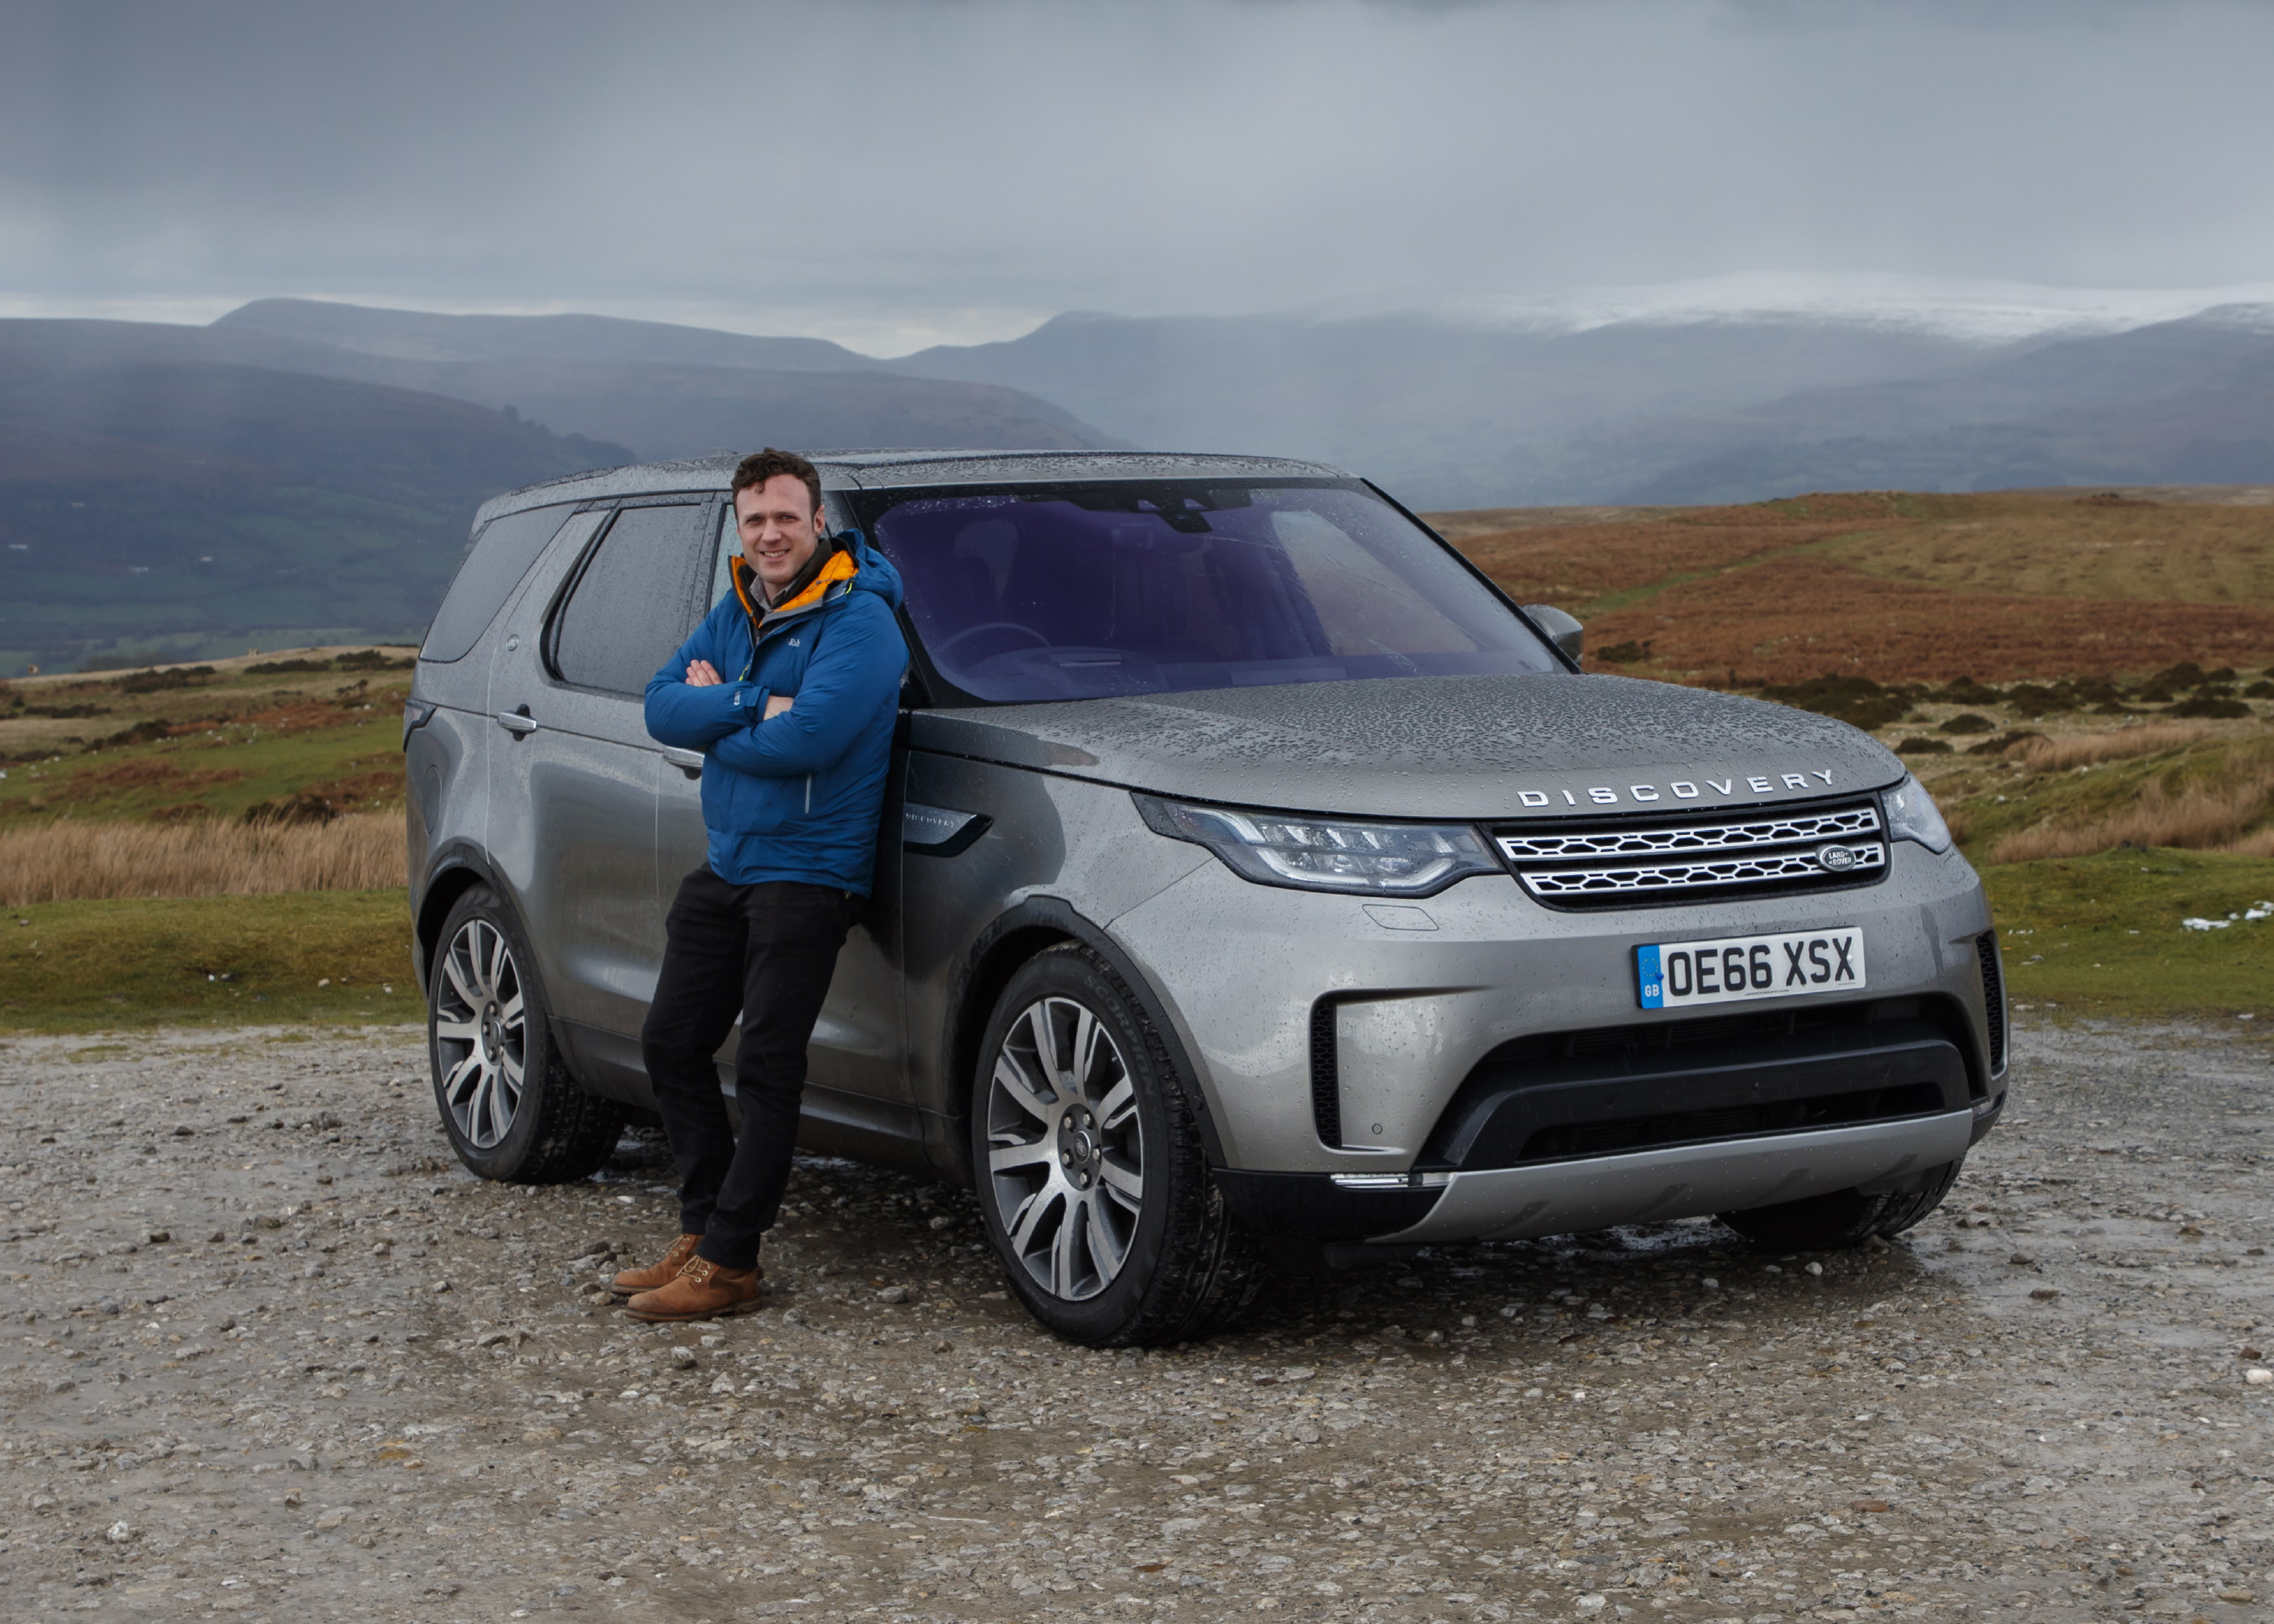 New Land Rover Discovery driven